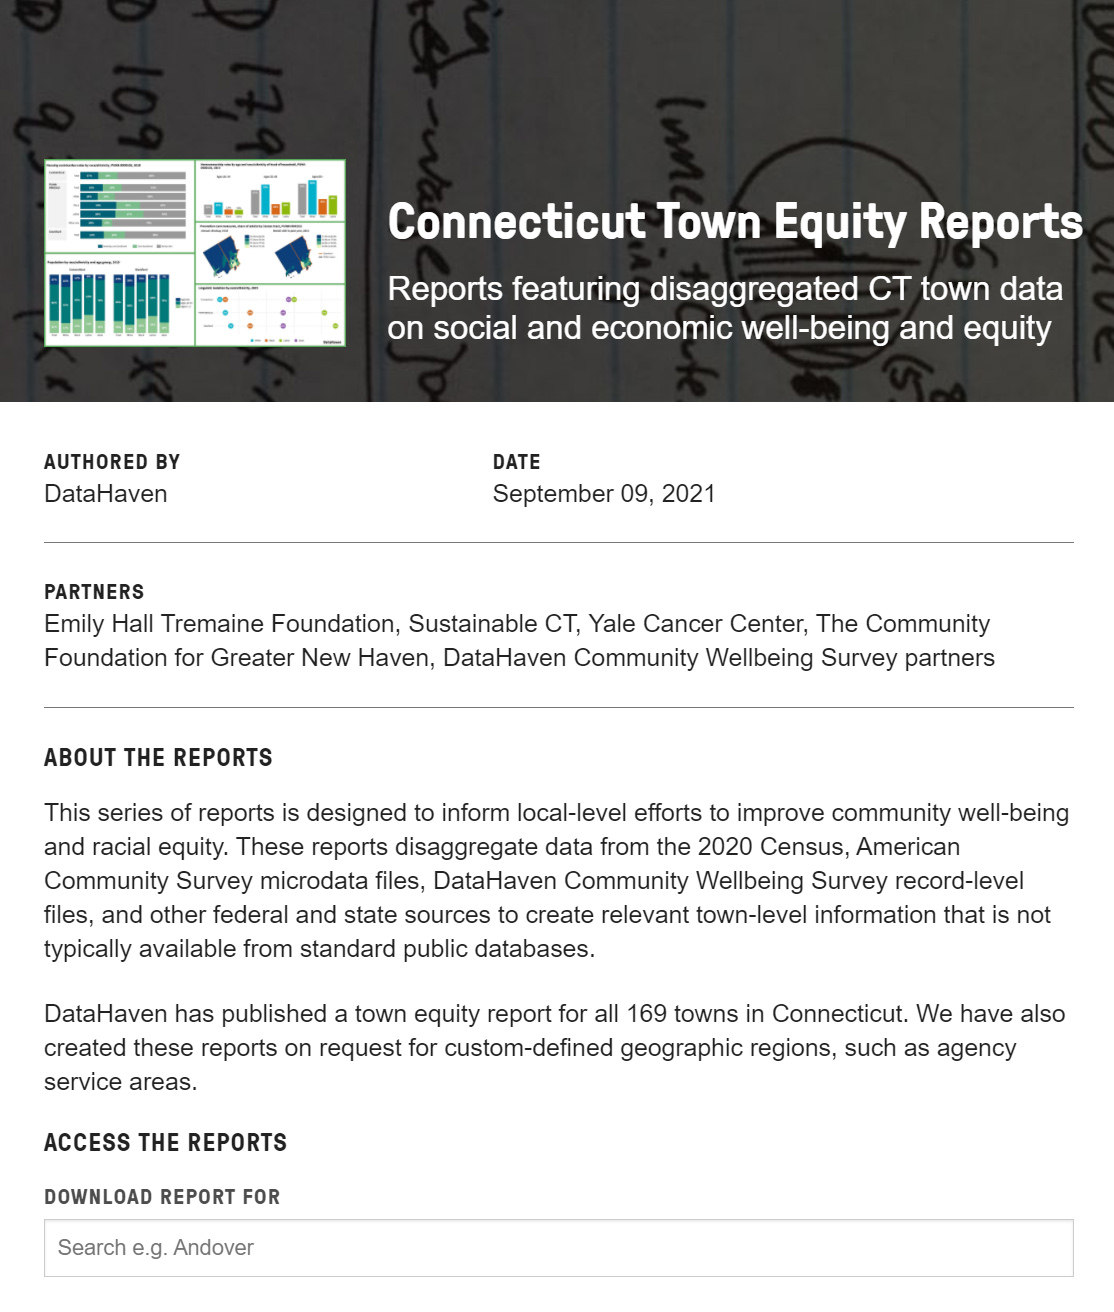 Connecticut Town Equity Reports